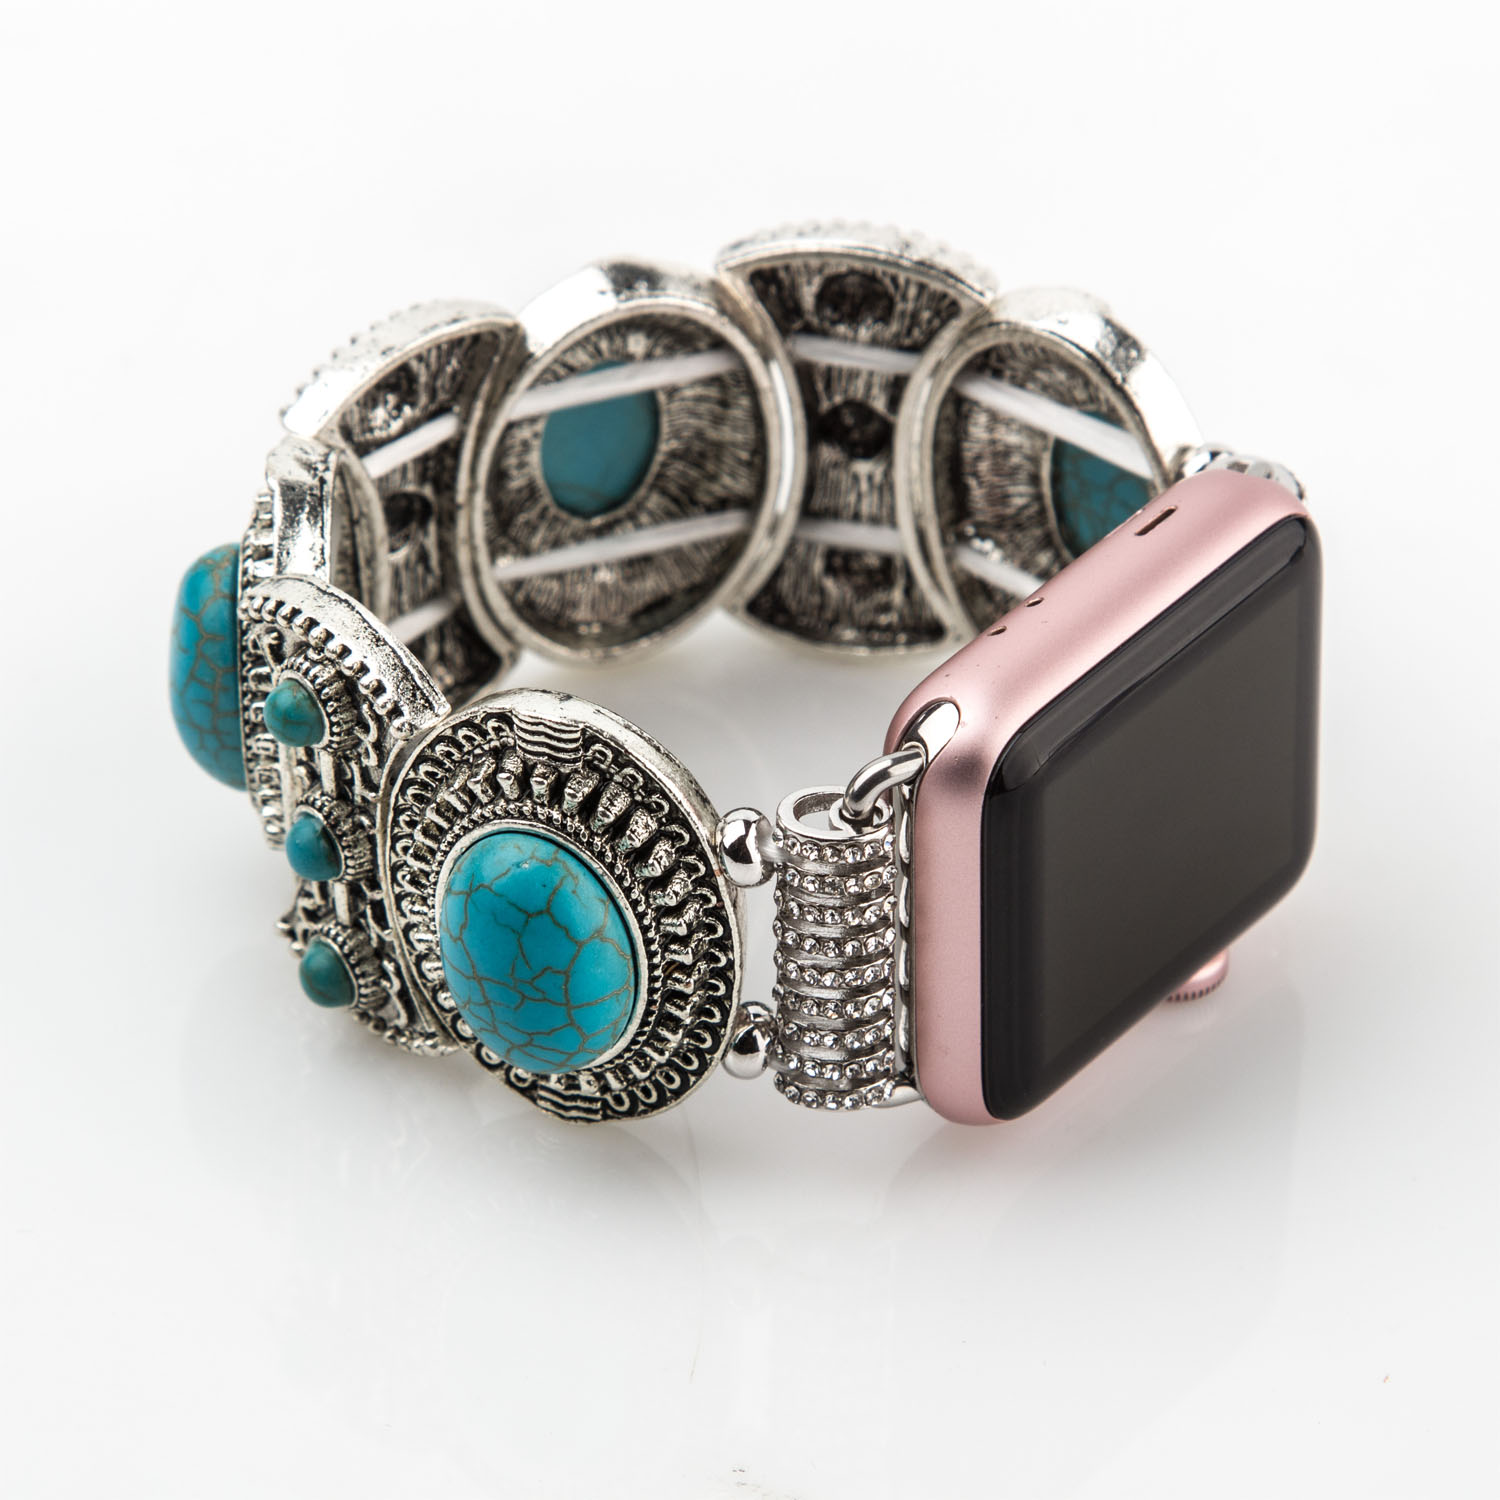 bracelet apple serie 3 retro turquoise stretch bracelet for apple series 3 8536